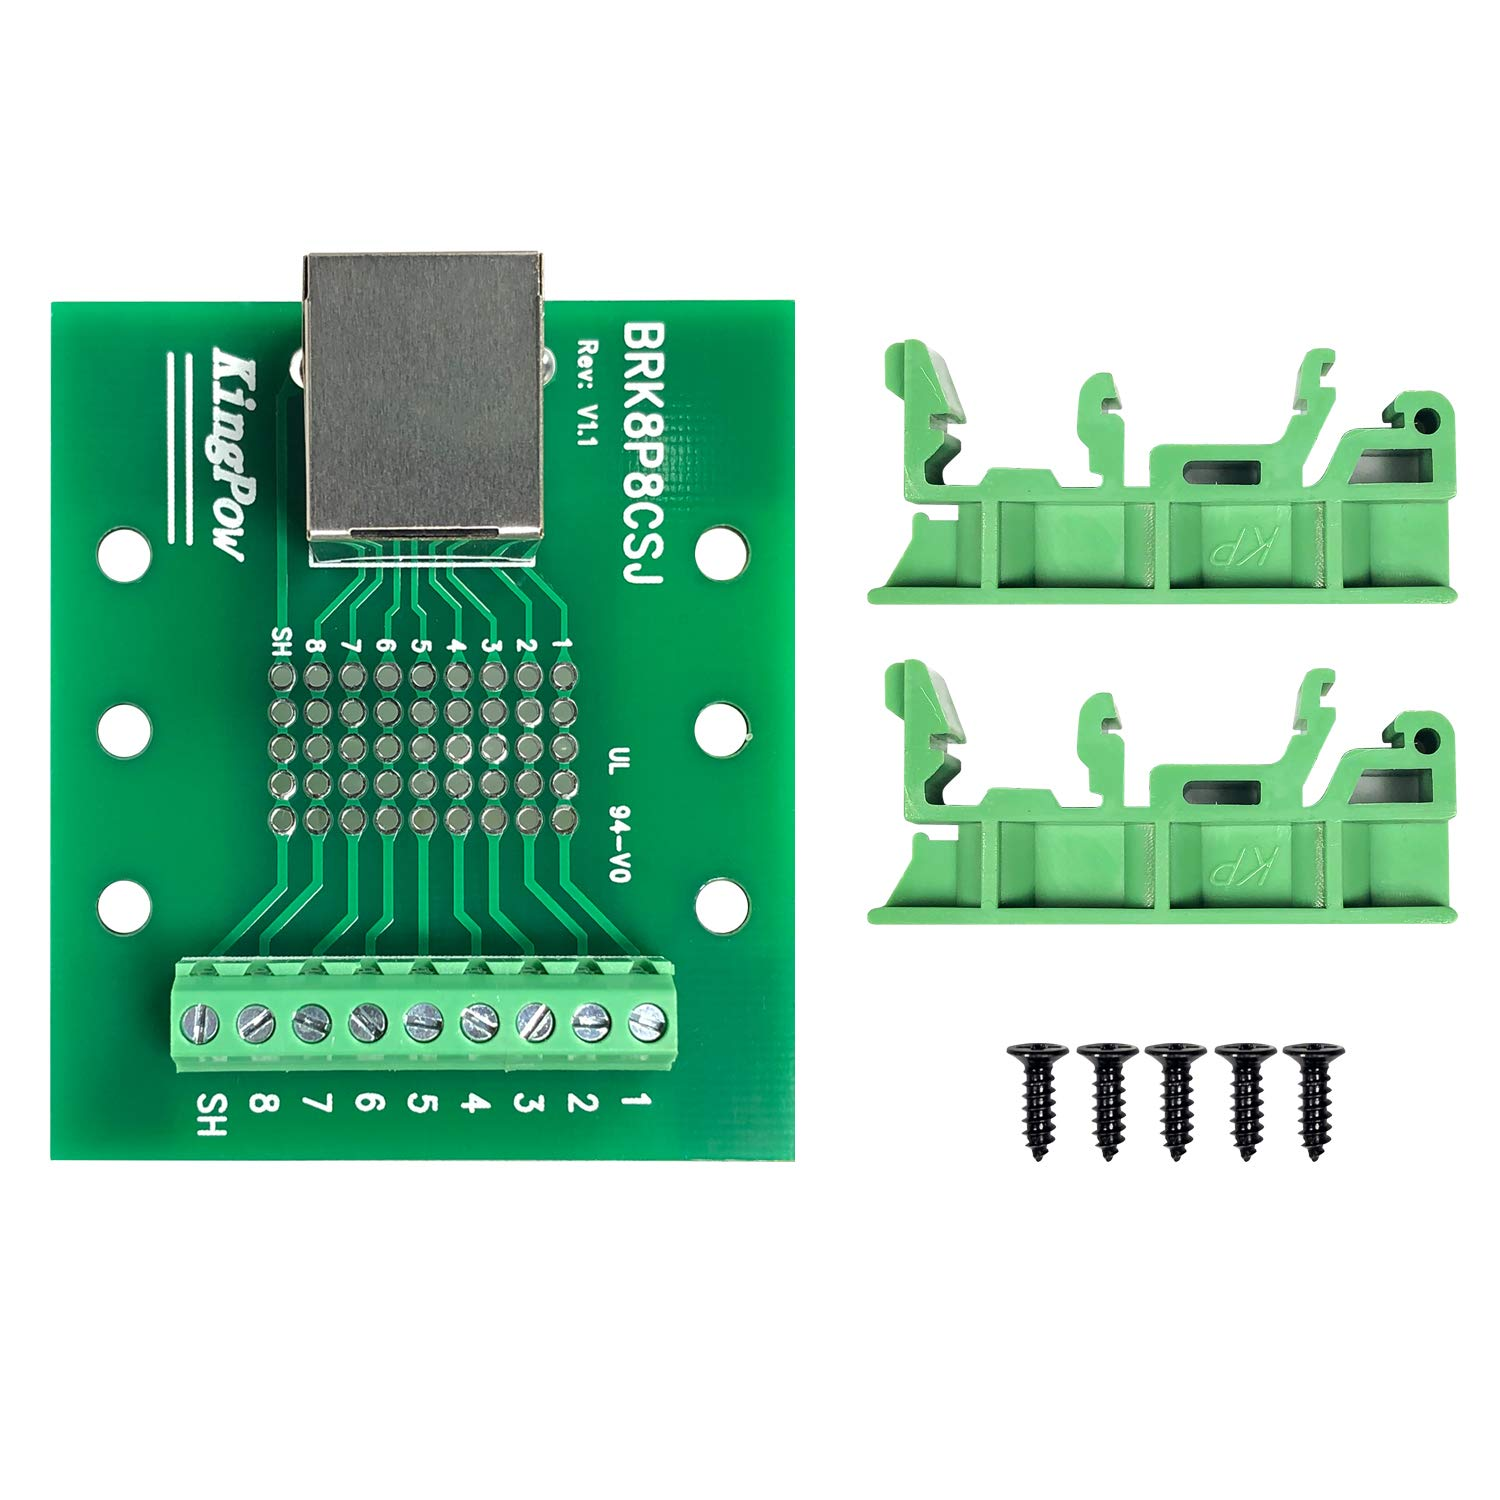 RJ-45-Terminal-UP RJ-45//8P8C to Screw Terminal Adaptor Connector Breakoutout Board for Ethernet DMX-512 RS-485 RS-422 RS-232